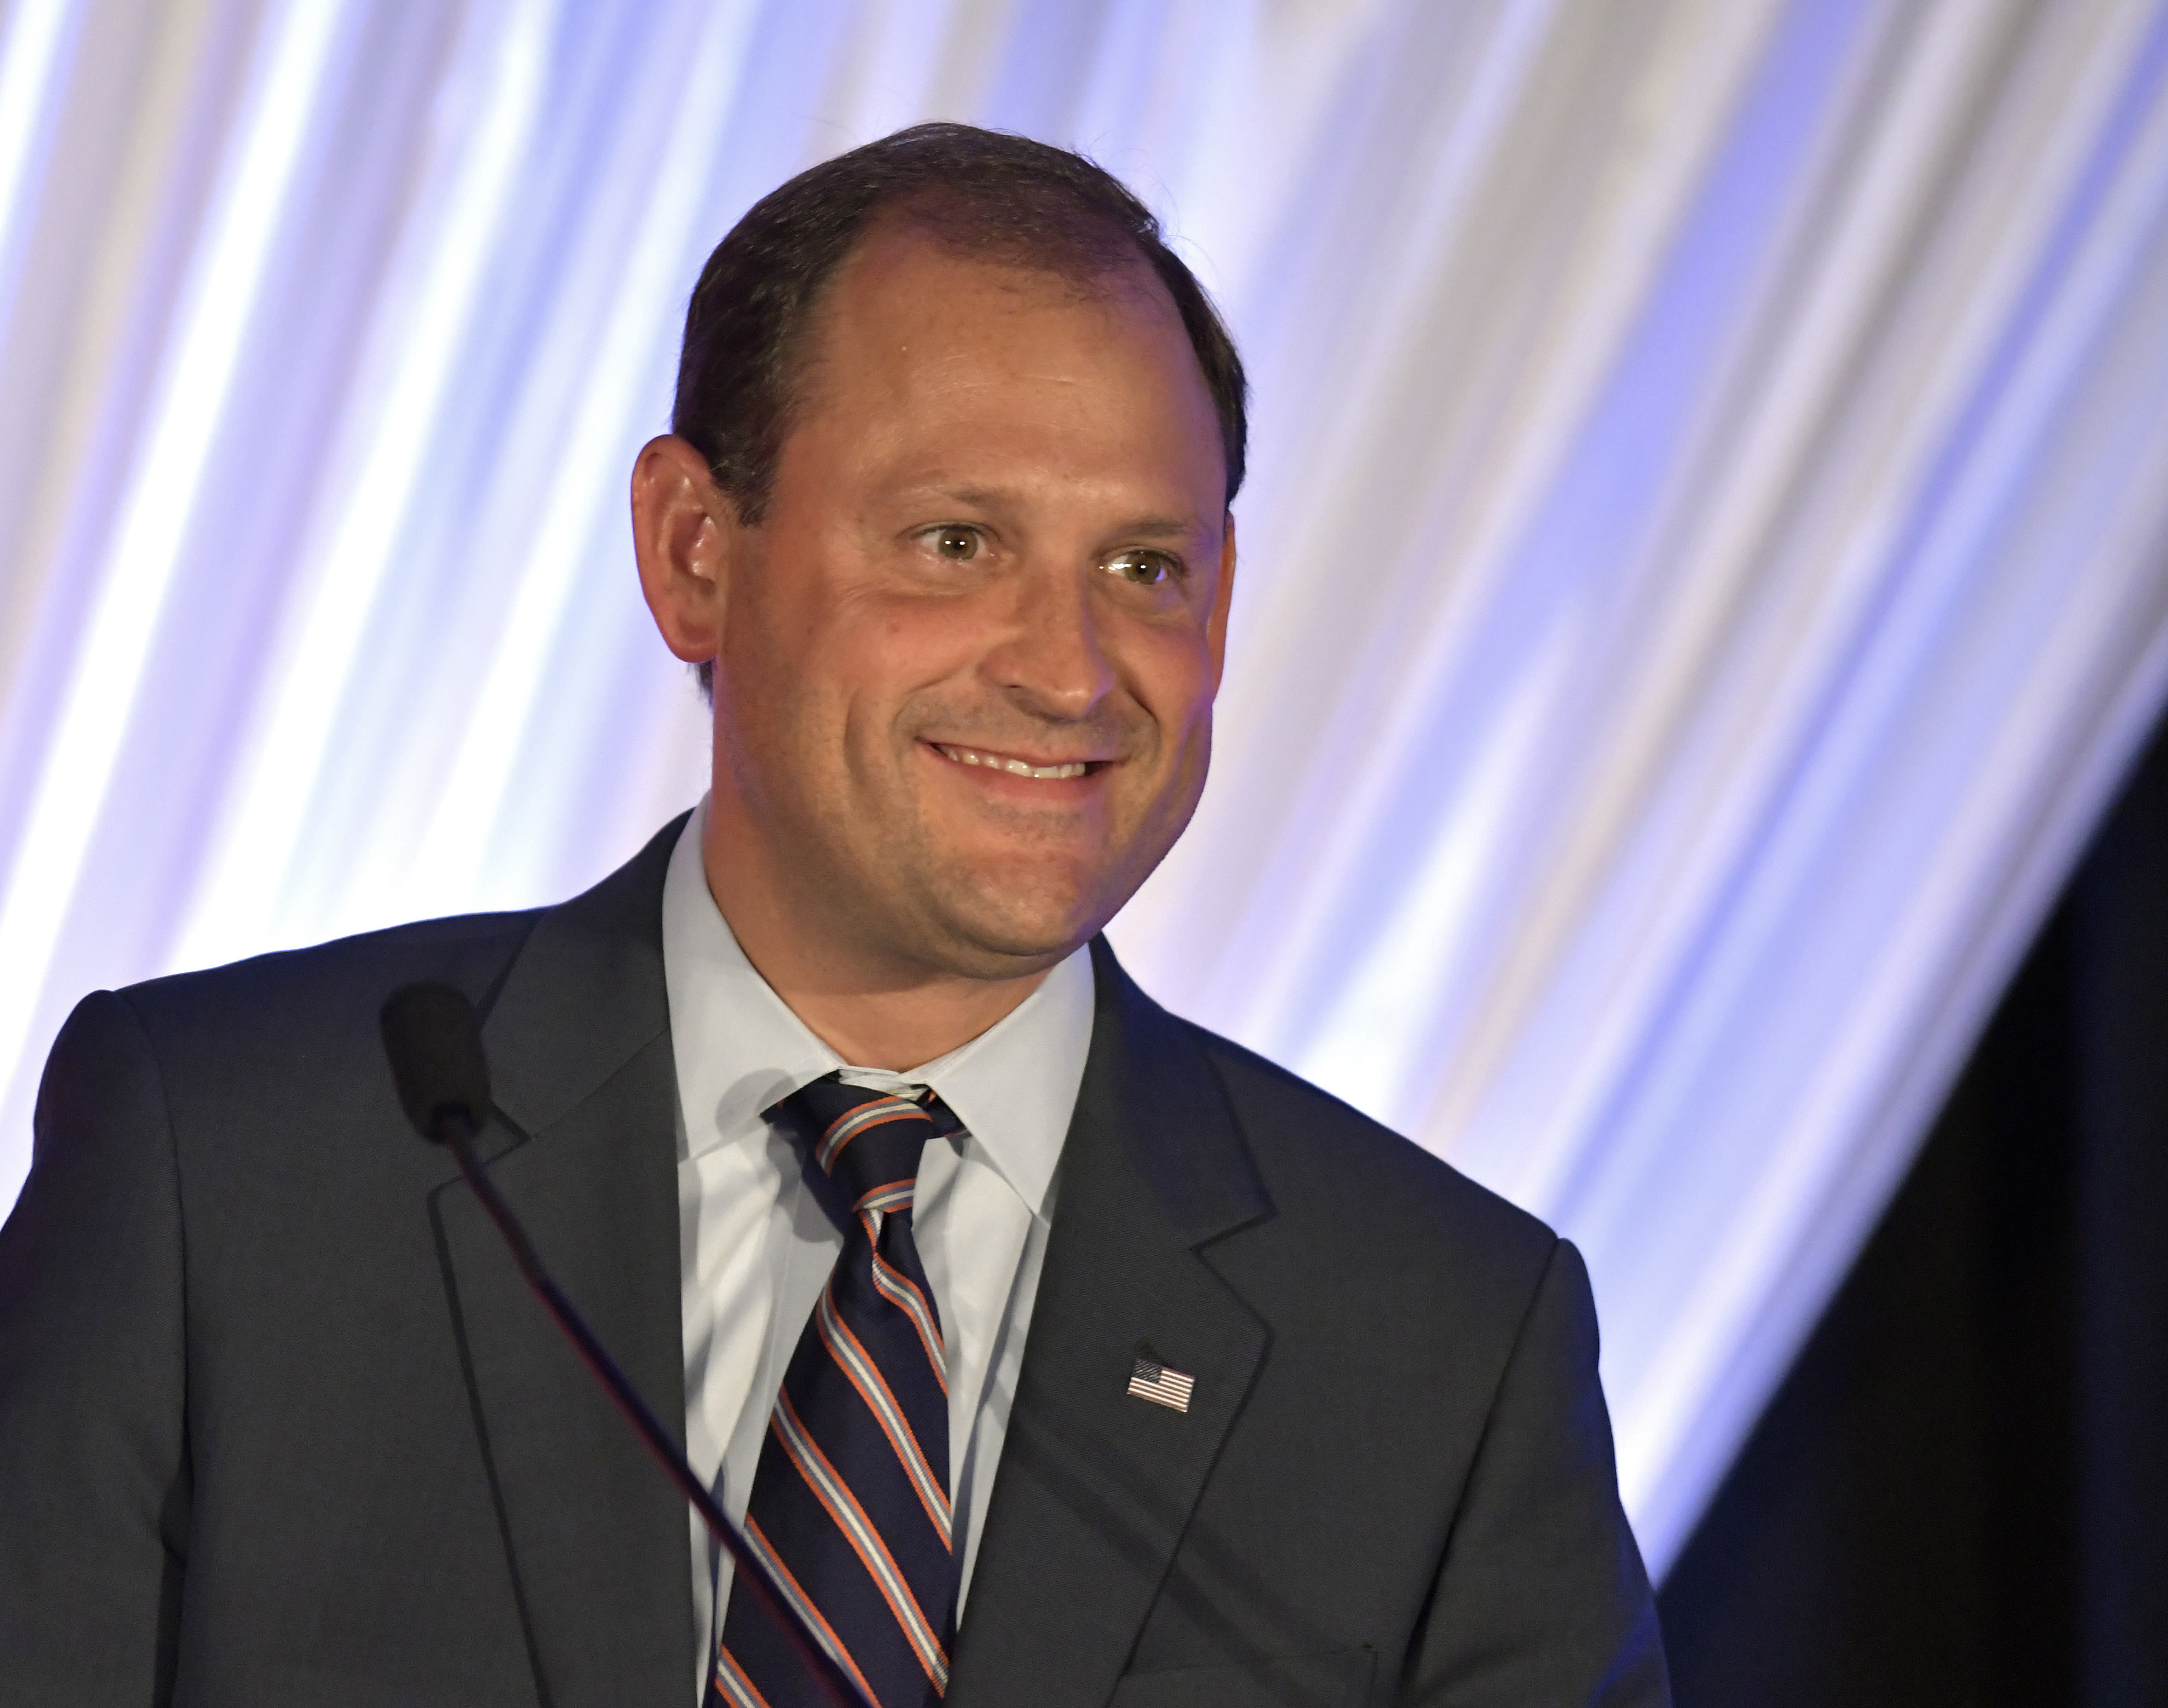 FILE- In this Aug. 25, 2018, file photo Rep. Andy Barr, R-Ky., addresses the audience during the Republican Party's Lincoln Dinner in Lexington, Ky. Democrat Amy McGrath has raised more money than Republican U.S. Rep. Andy Barr in Kentucky's 6th Congressional district. McGrath has raised more than $6 million while Barr has raised more than $4 million. (AP Photo/Timothy D. Easley, File)